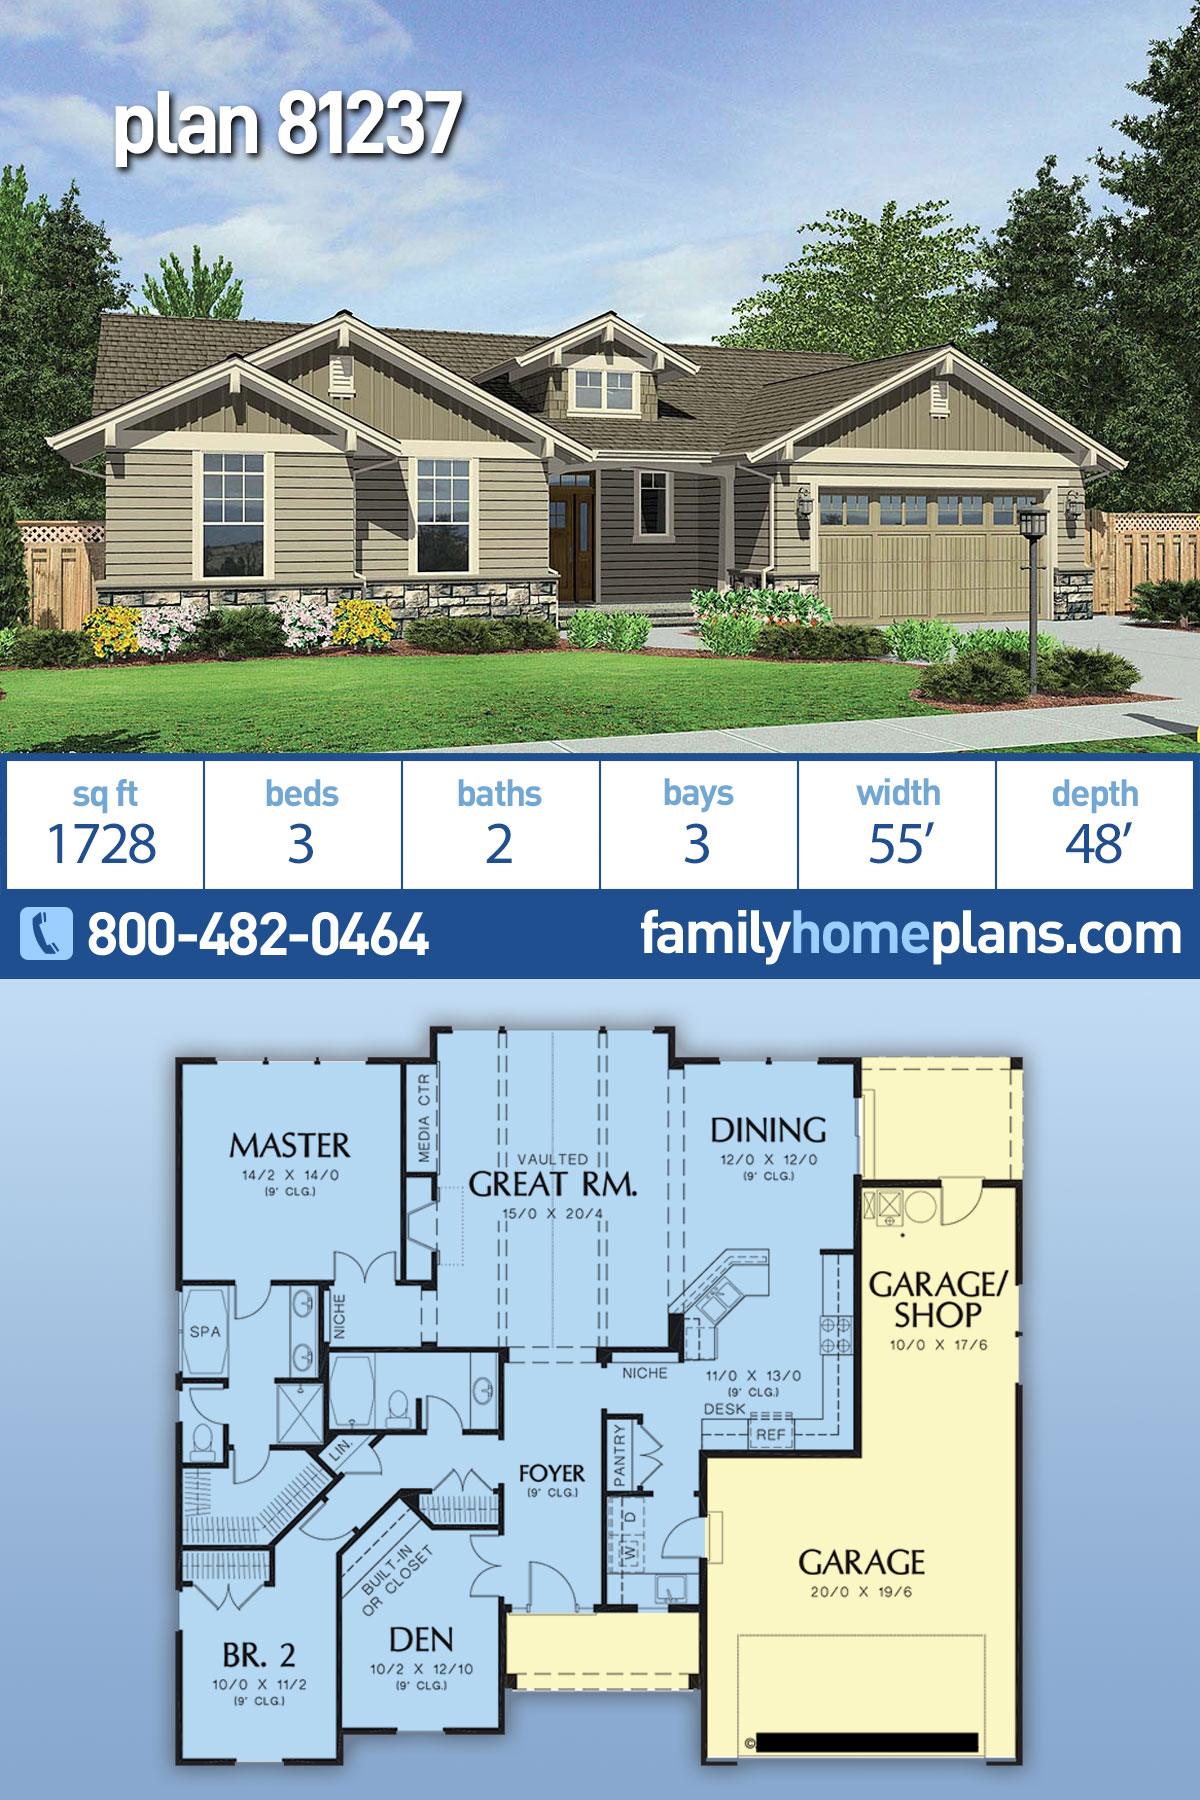 Craftsman House Plan 81237 with 2 Beds, 2 Baths, 3 Car Garage